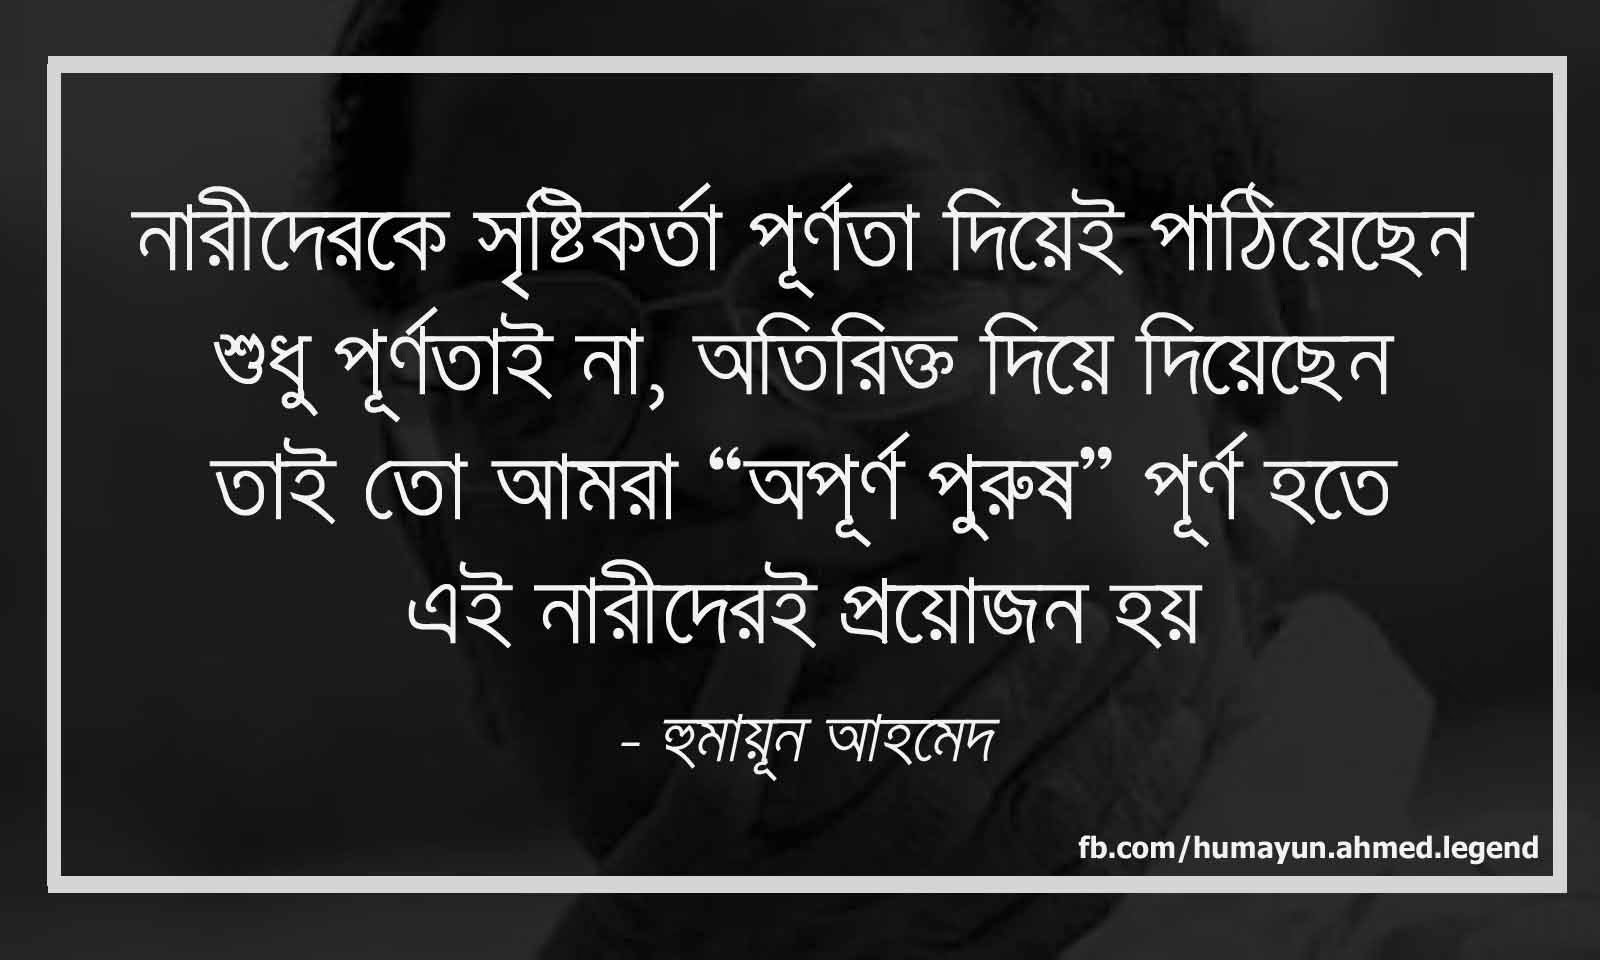 How To Love A Woman Quotes Heroes Saying Humayun Ahmed's Quotes About Girls And Women